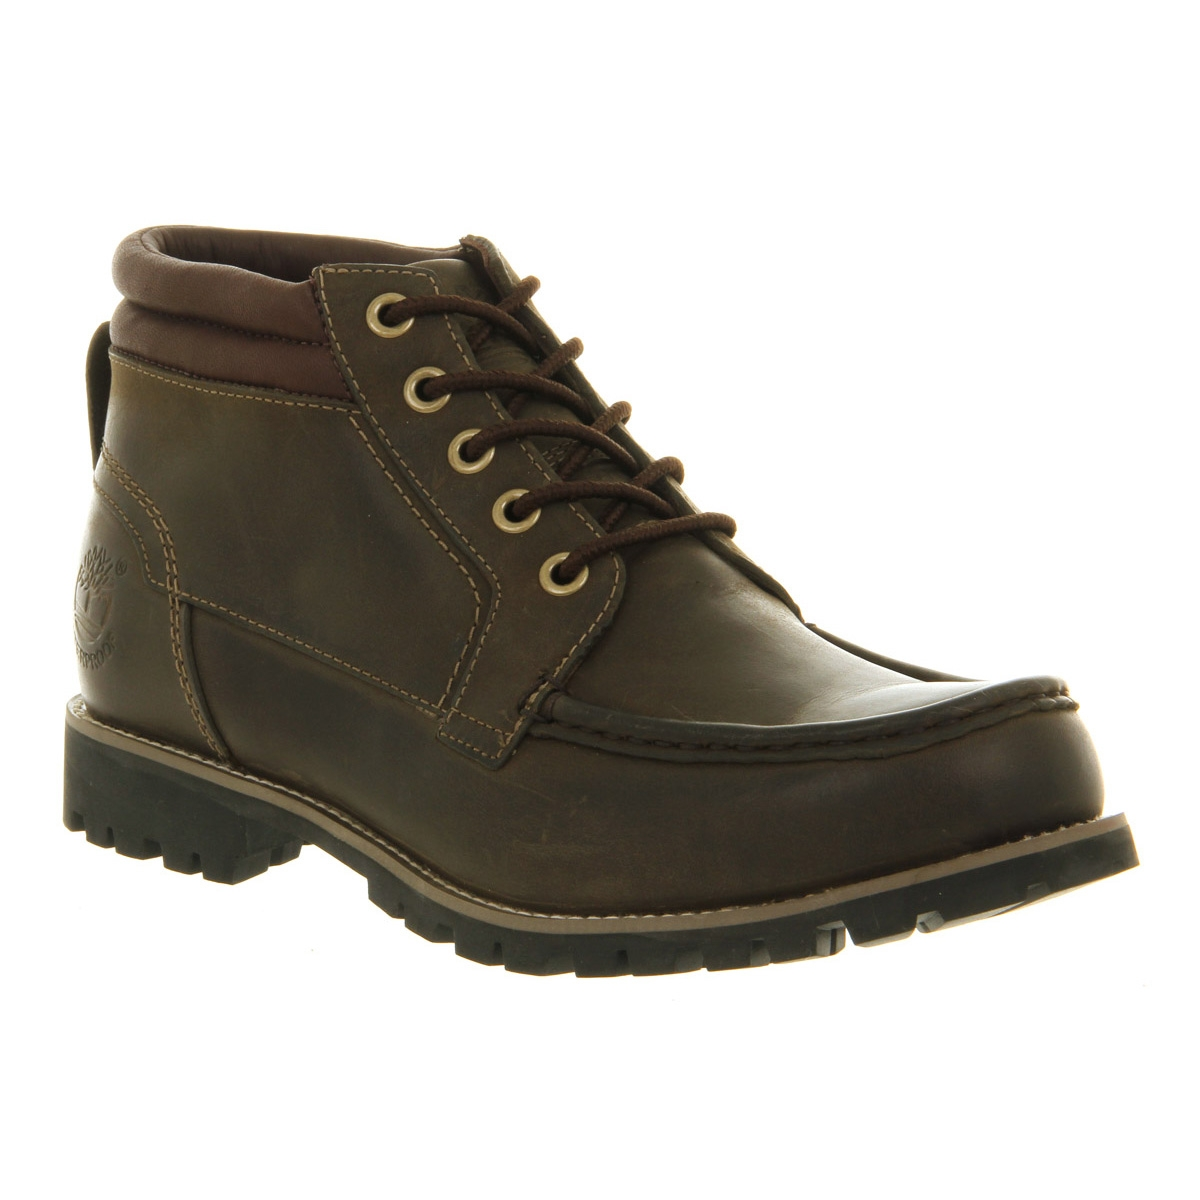 Image Of Timberland Earthkeepers Rugged 5 Eye Handsewn Boot (Menu0027s)   Dark  Olive Roughcut